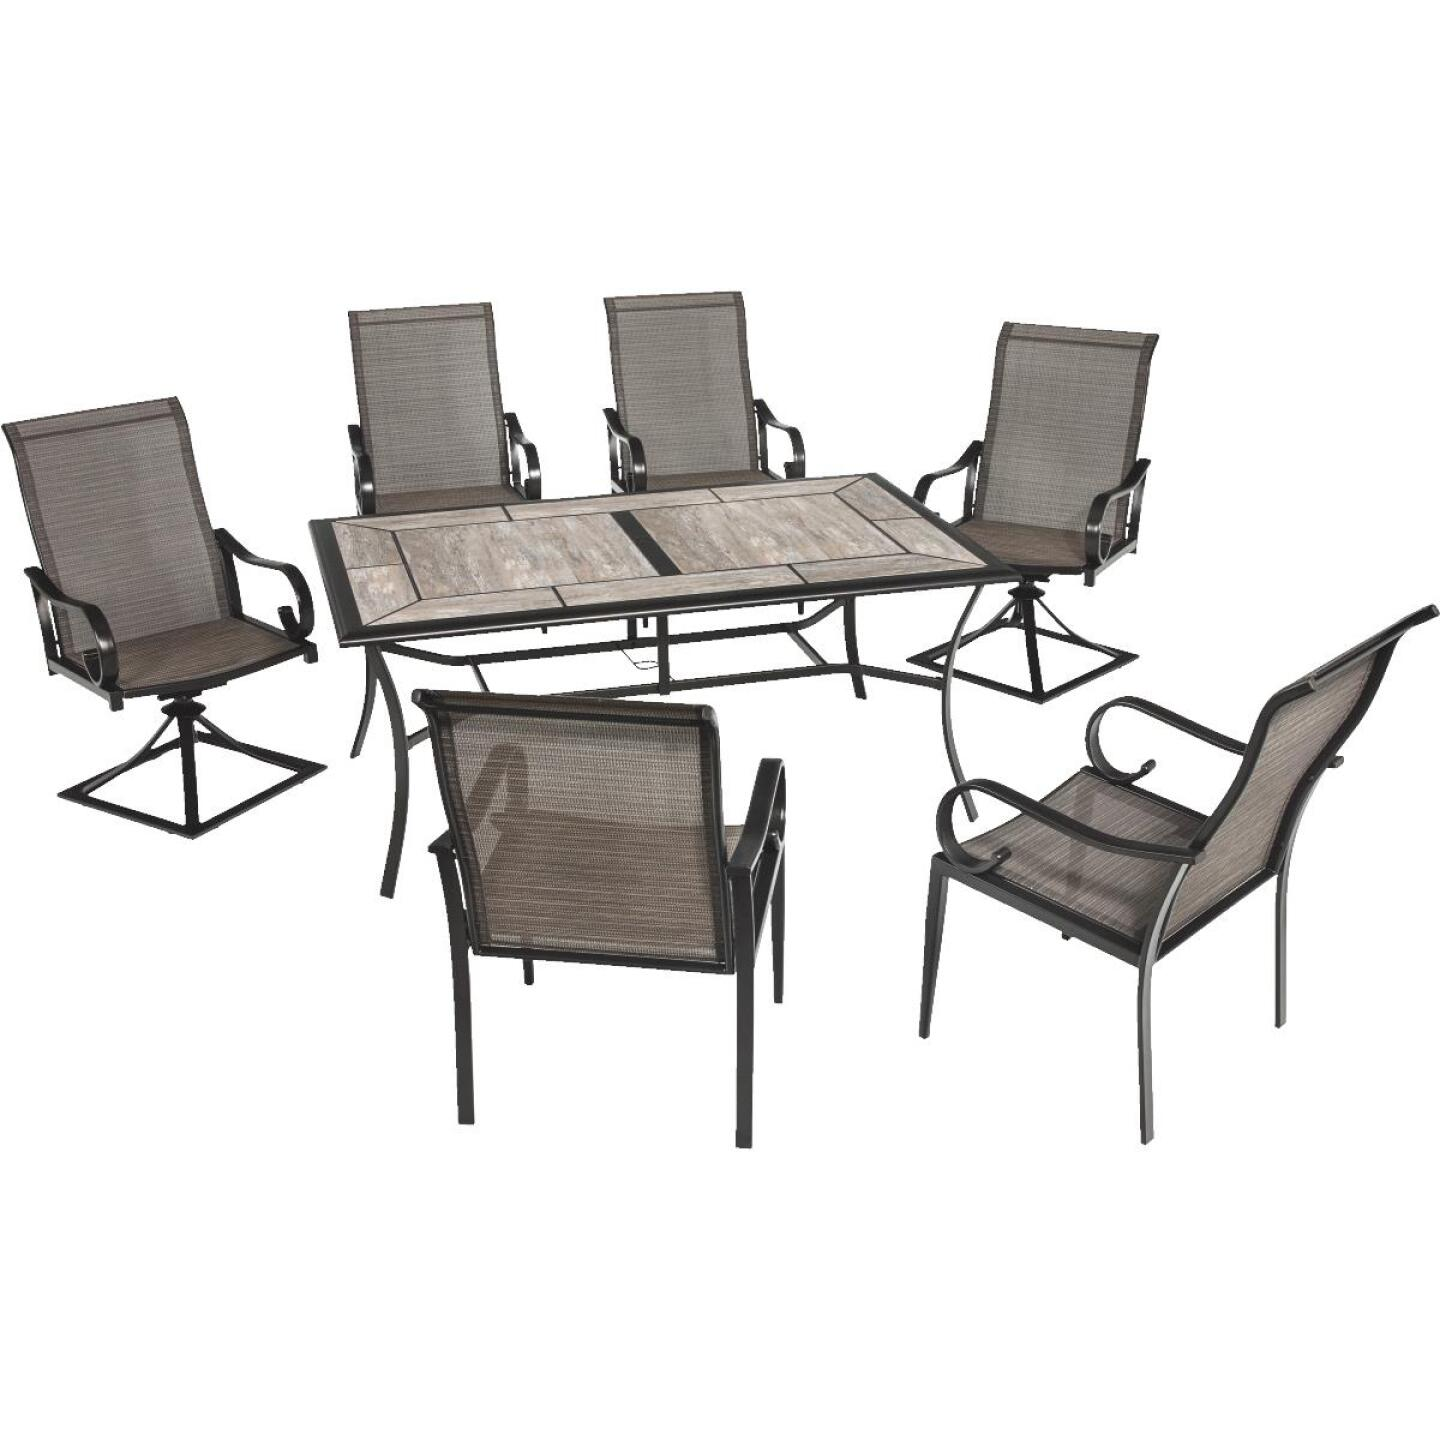 Outdoor Expressions Berkshire 7-Piece Dining Set Image 91